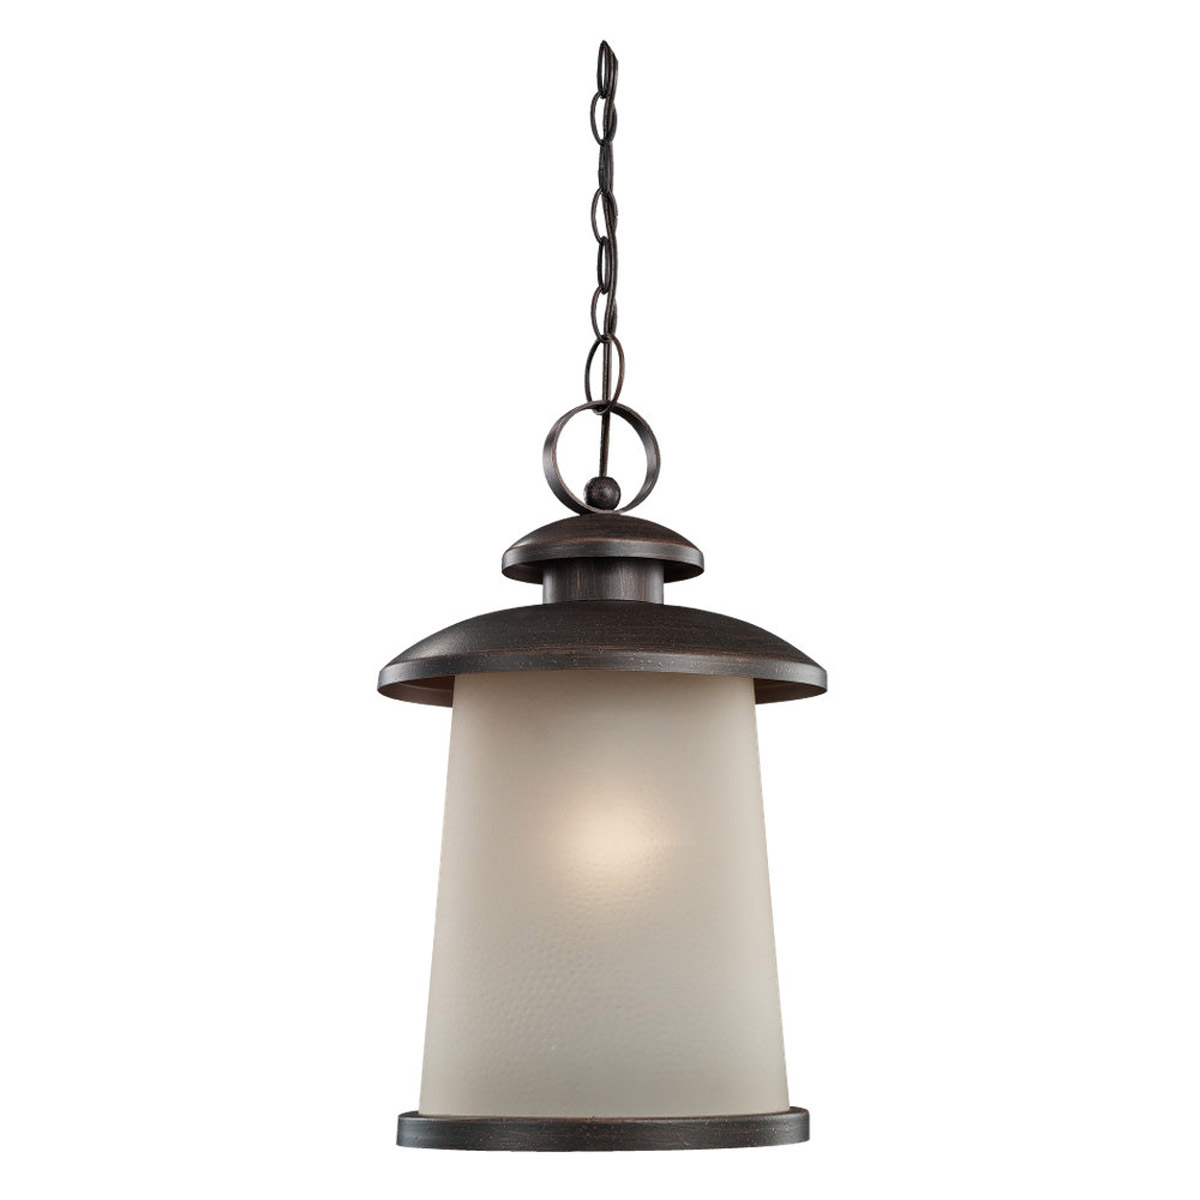 Sea Gull Lighting 59th Street 1 Light Outdoor Pendant in Textured Rust Patina 60330-08 photo